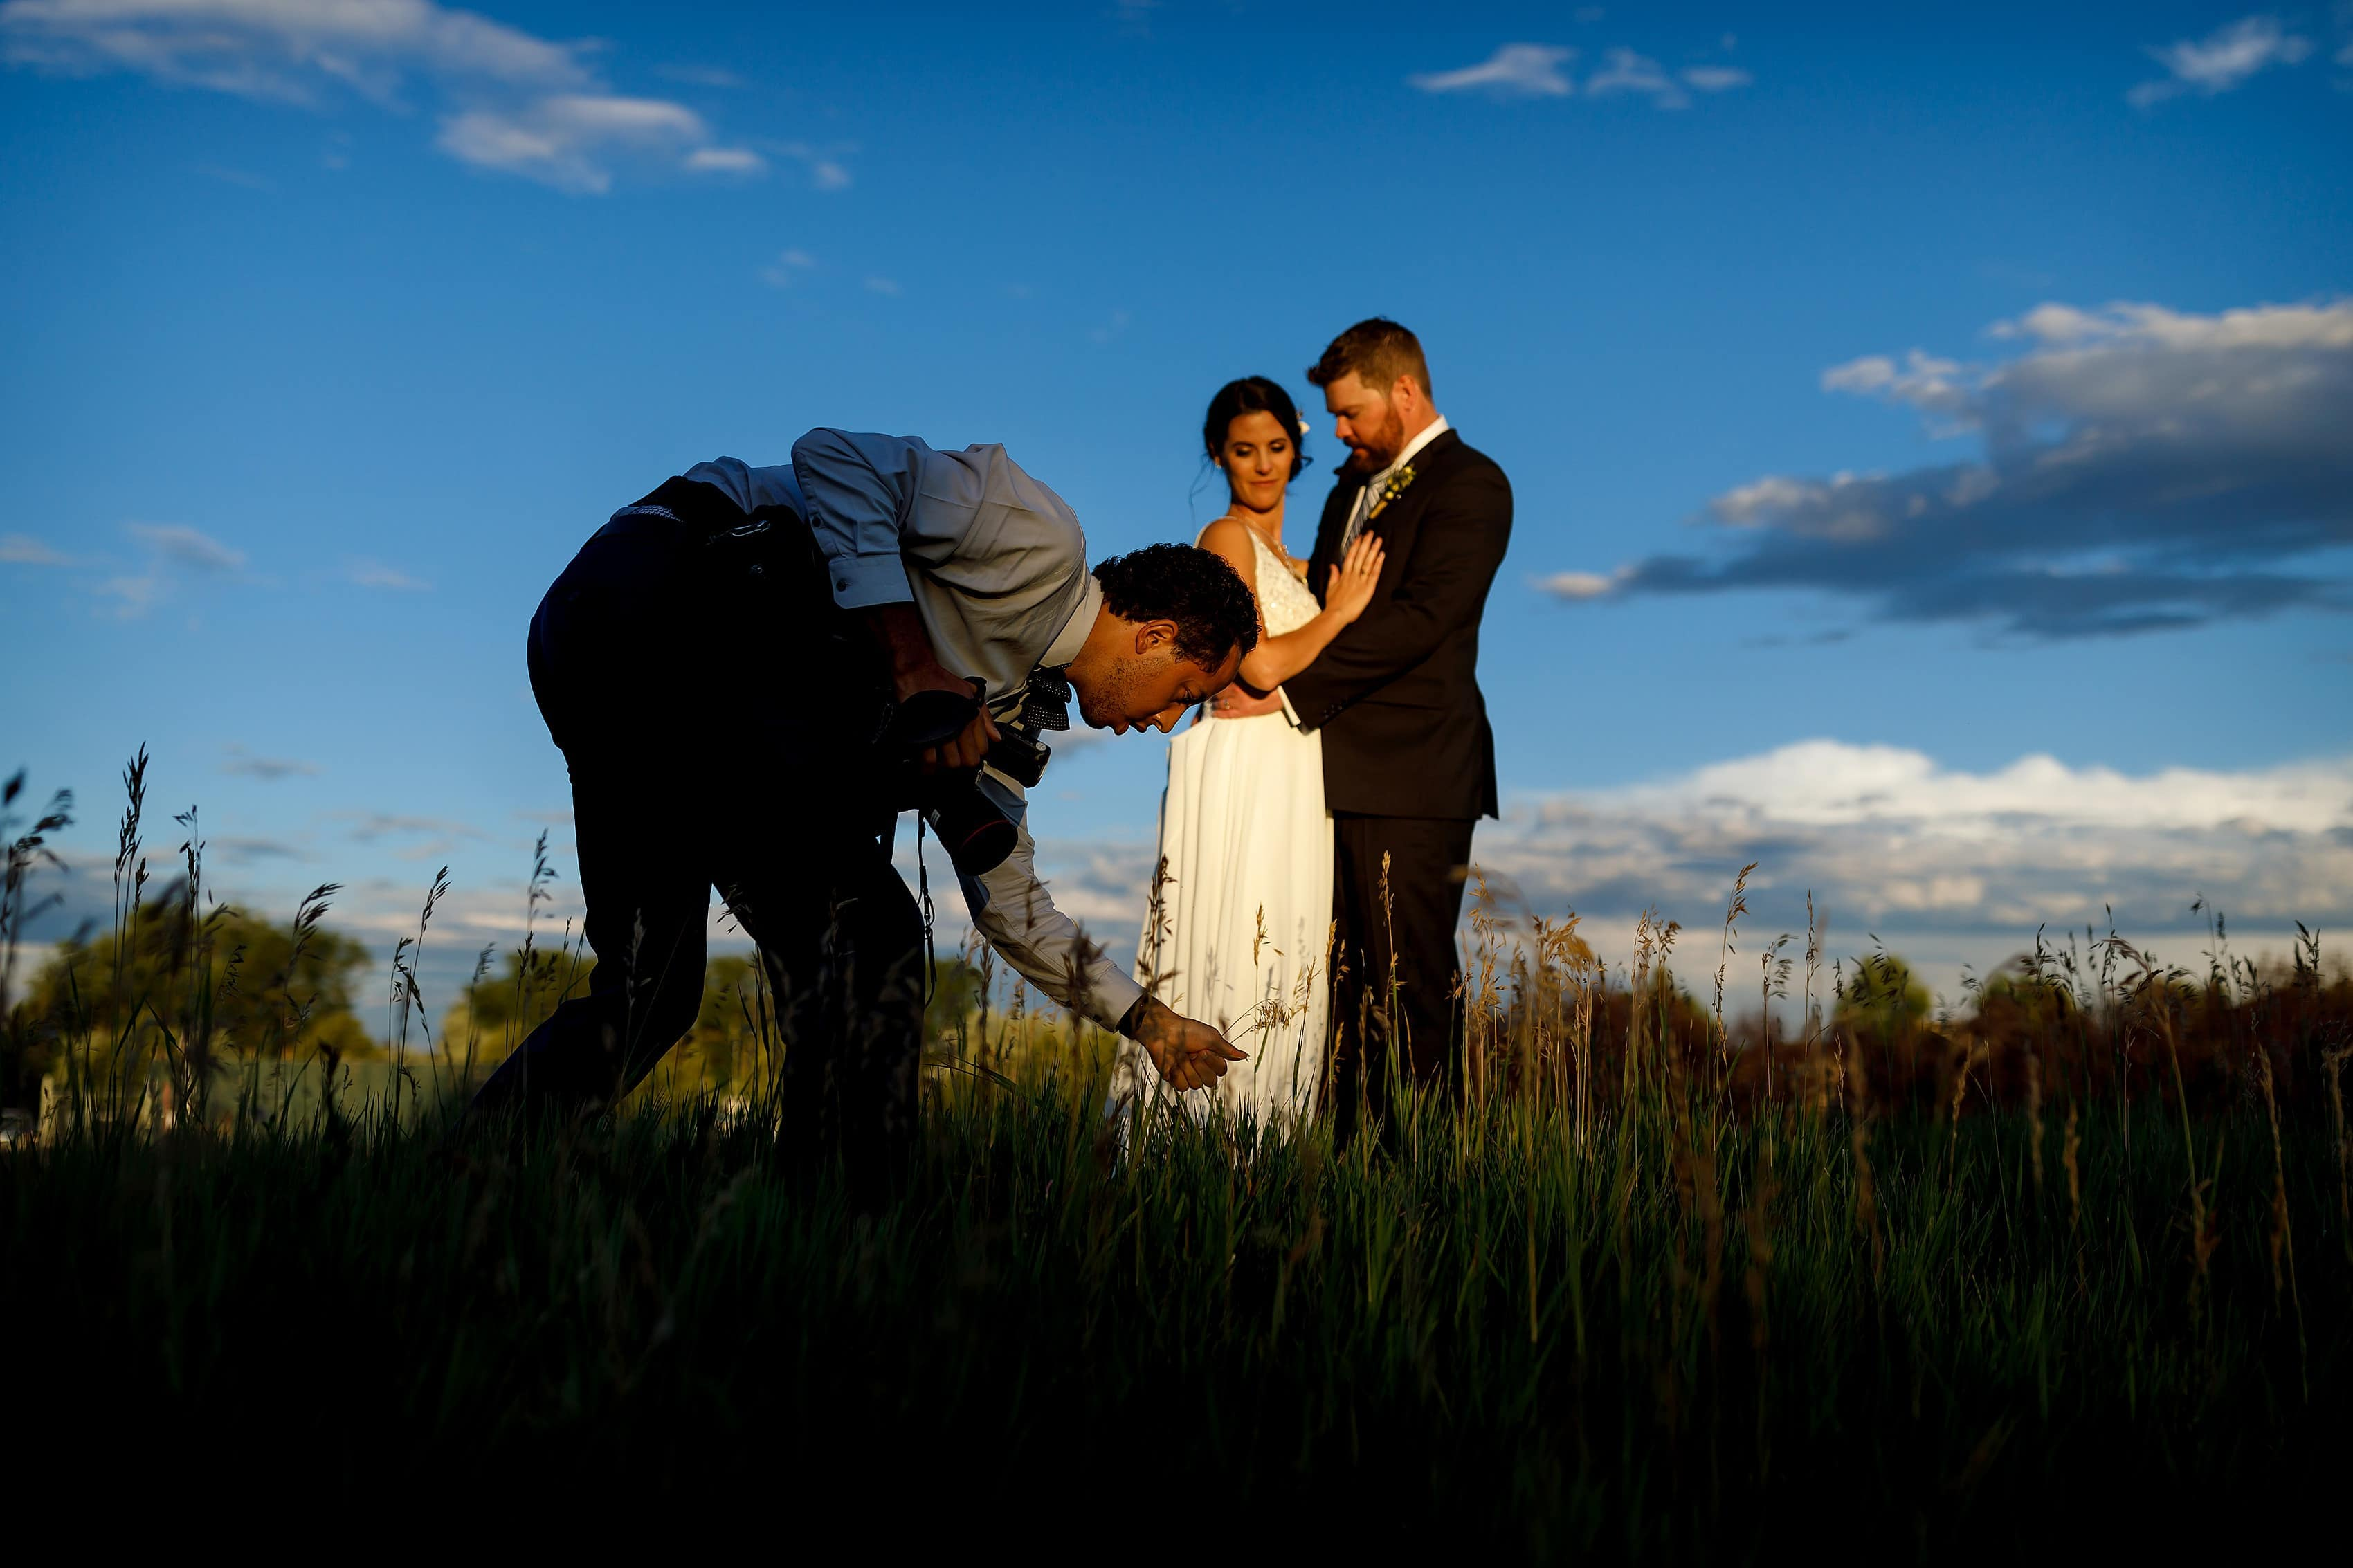 A Behind the Scenes look back at Wasabi Photography's 2019 wedding with photos of our team going above and beyond to make the best images for our couples!